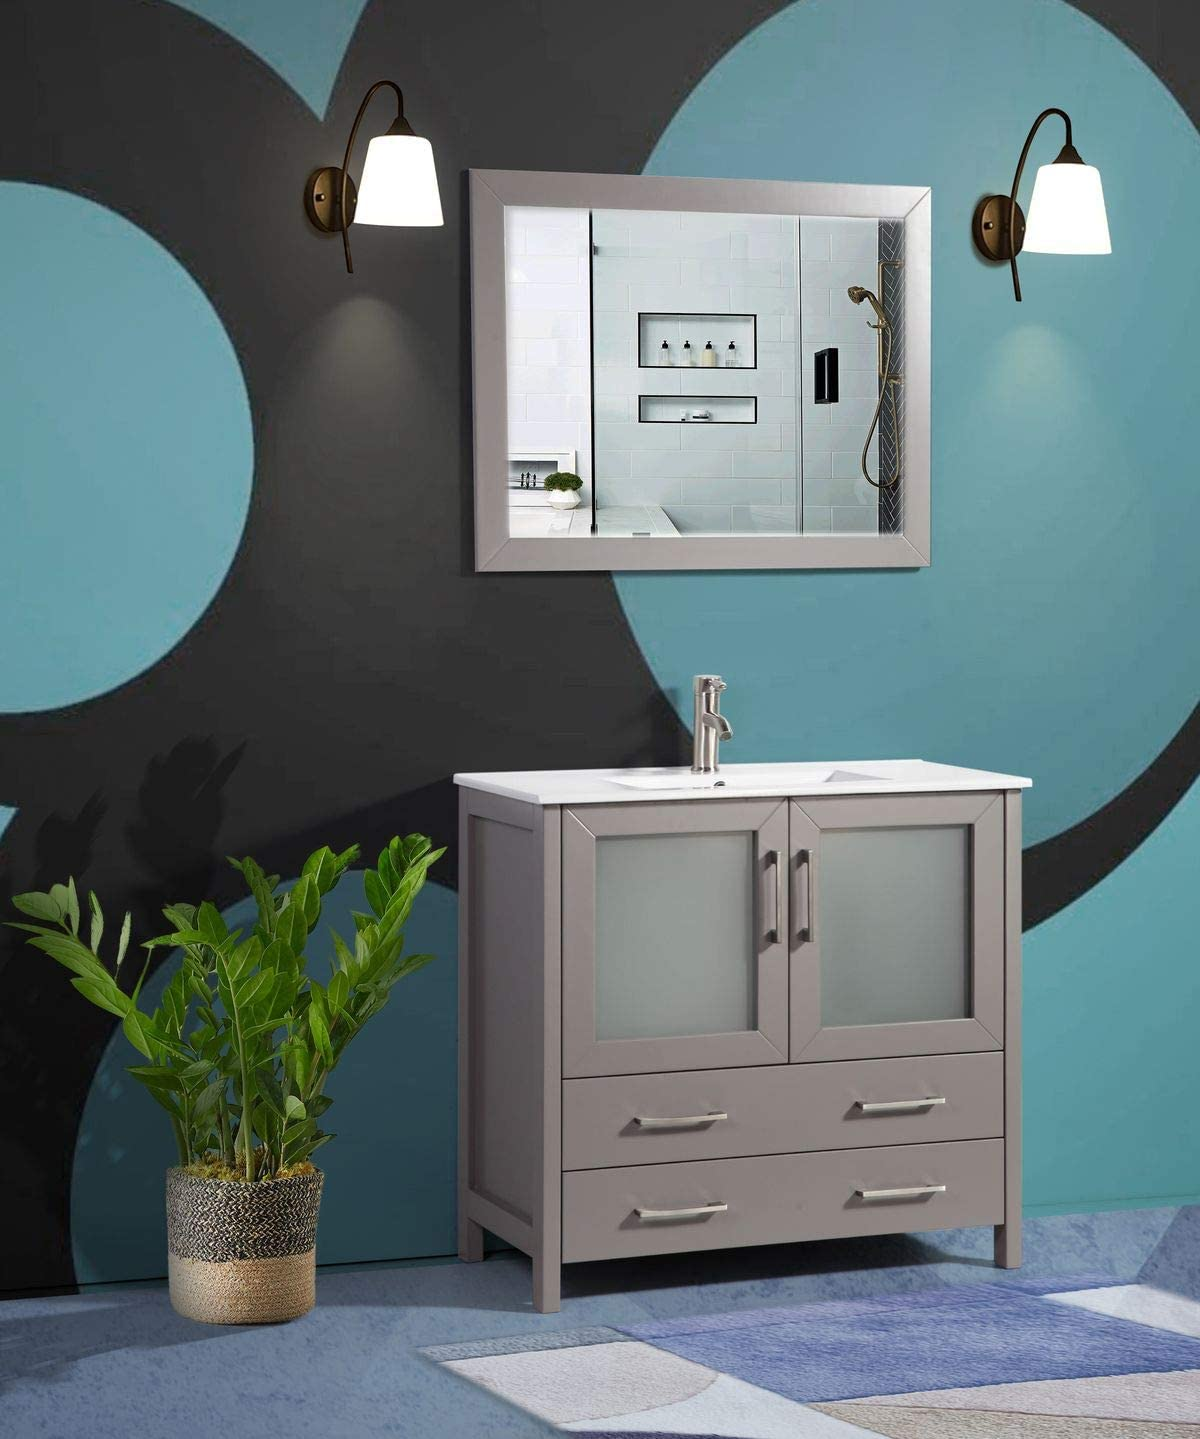 Vanity Art 36 Inch Single Sink Modern Bathroom Vanity Compact Set 1 Shelf 2 Drawers Ceramic Top Bathroom Cabinet With Free Mirror Va3036 G Kitchen Dining Amazon Com